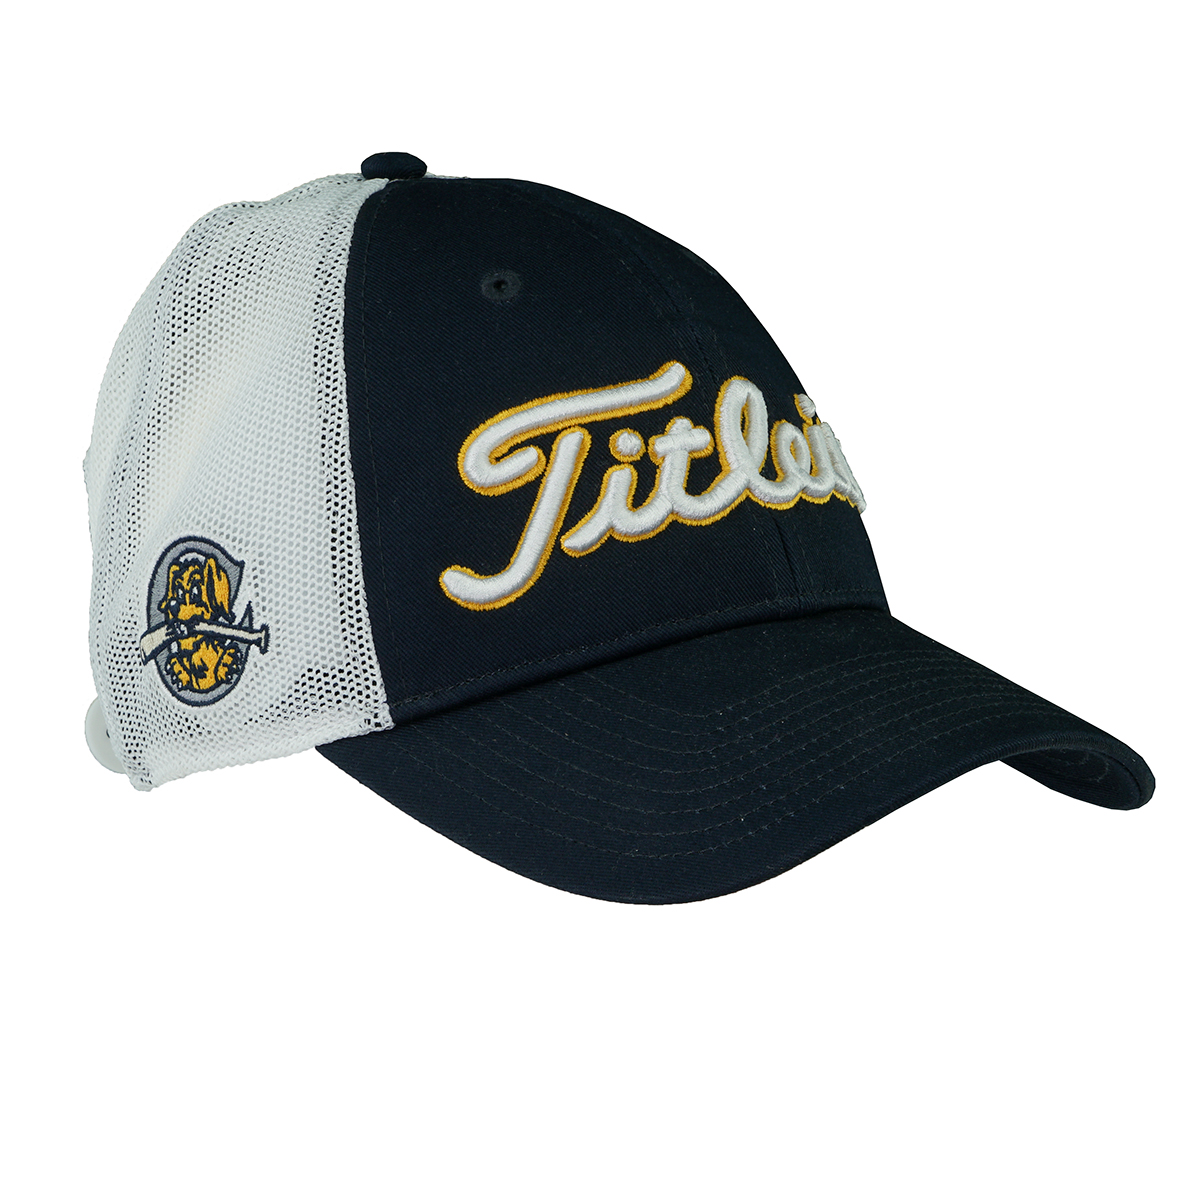 c63599e8 Details about Titleist Men's Collegiate Performance Hat Mesh Back River  Dogs Navy/White